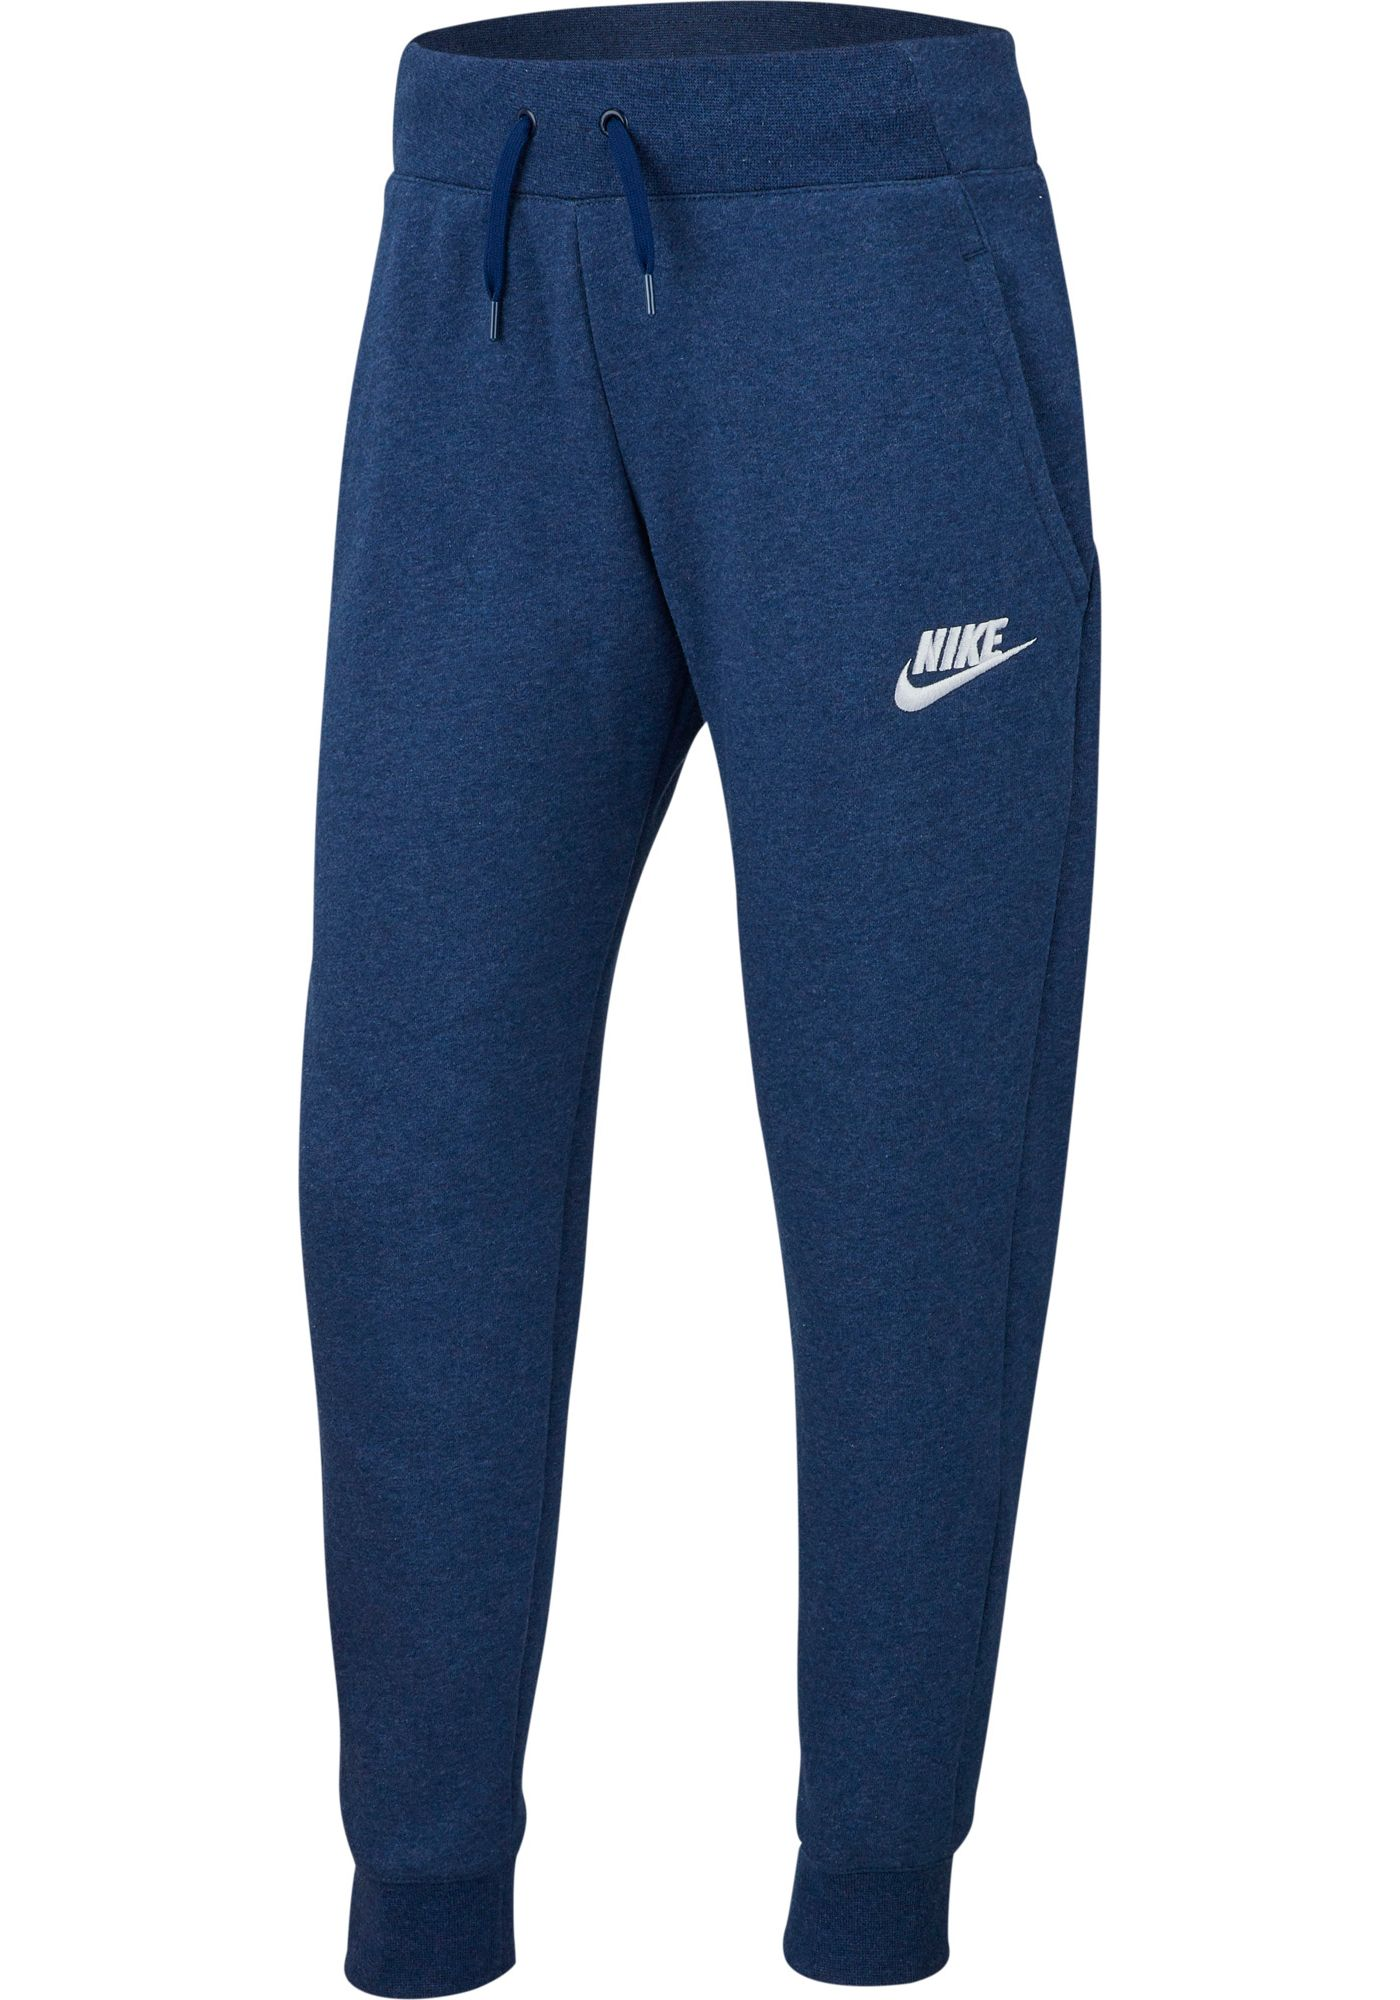 Nike Girls' Sportswear Essentials Pants